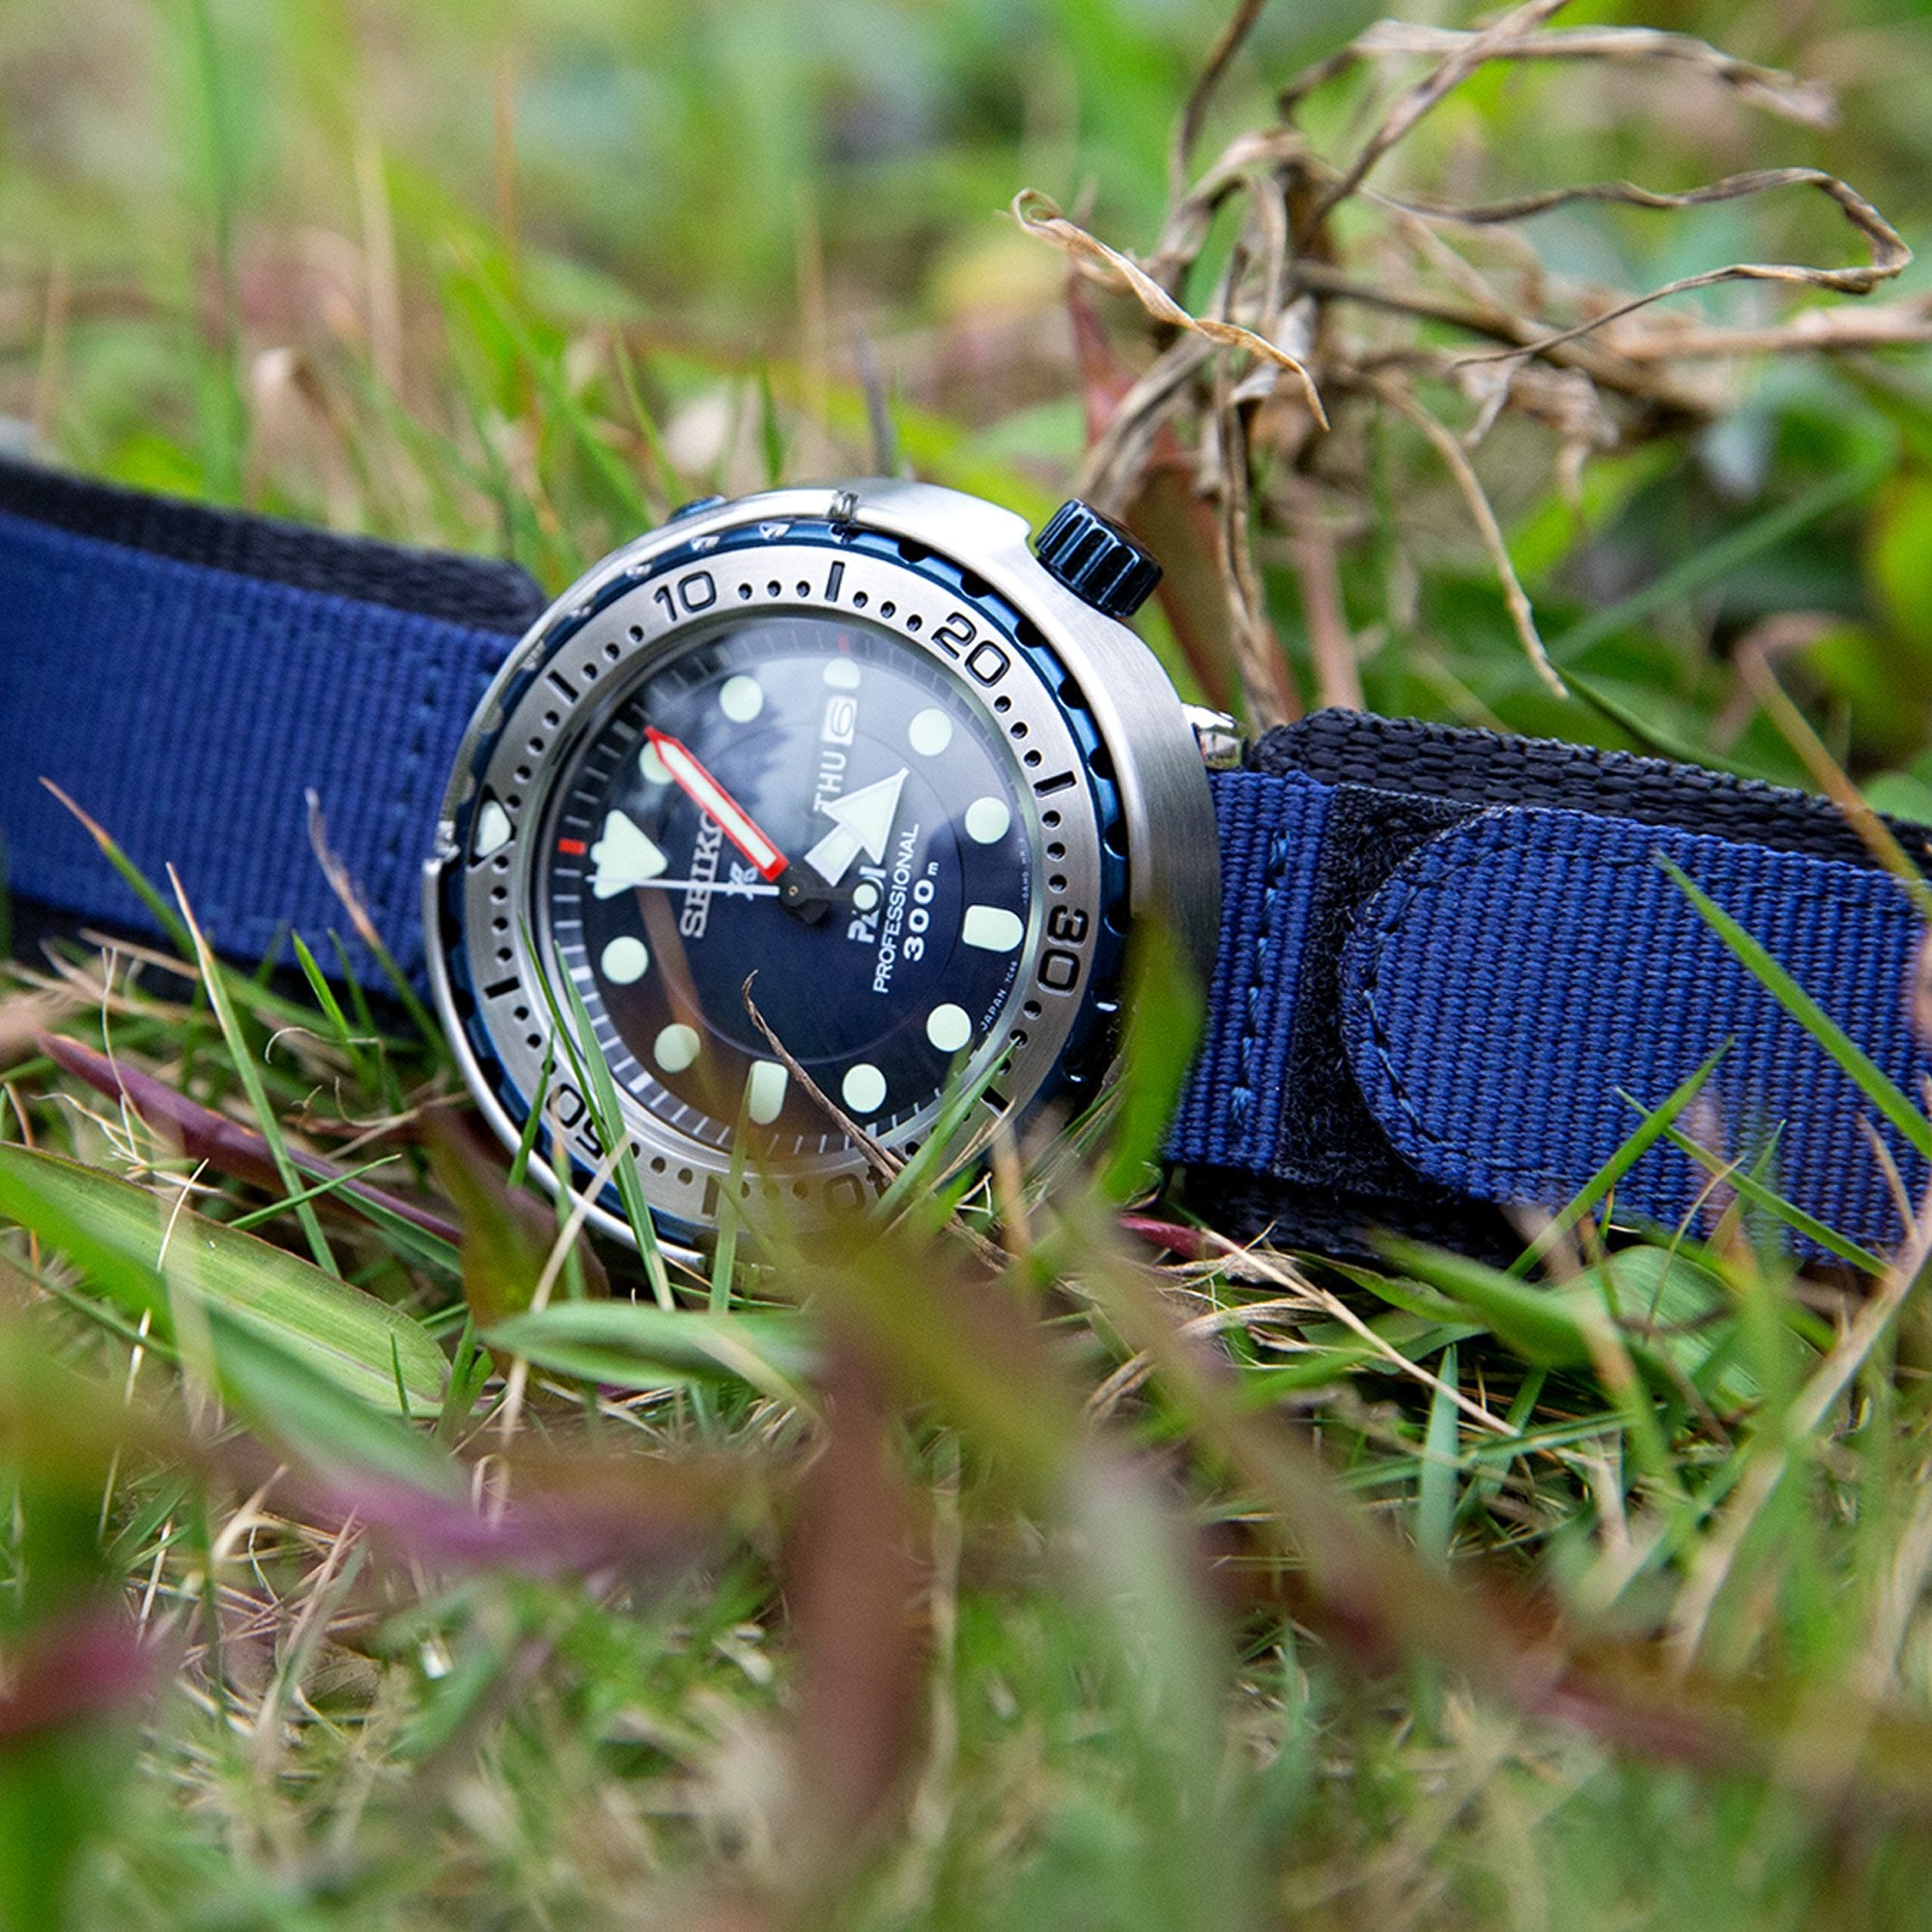 22mm MiLTAT Honeycomb Navy Blue Nylon Velcro Fastener Watch Strap Brushed Stainless Buckle Strapcode Watch Bands